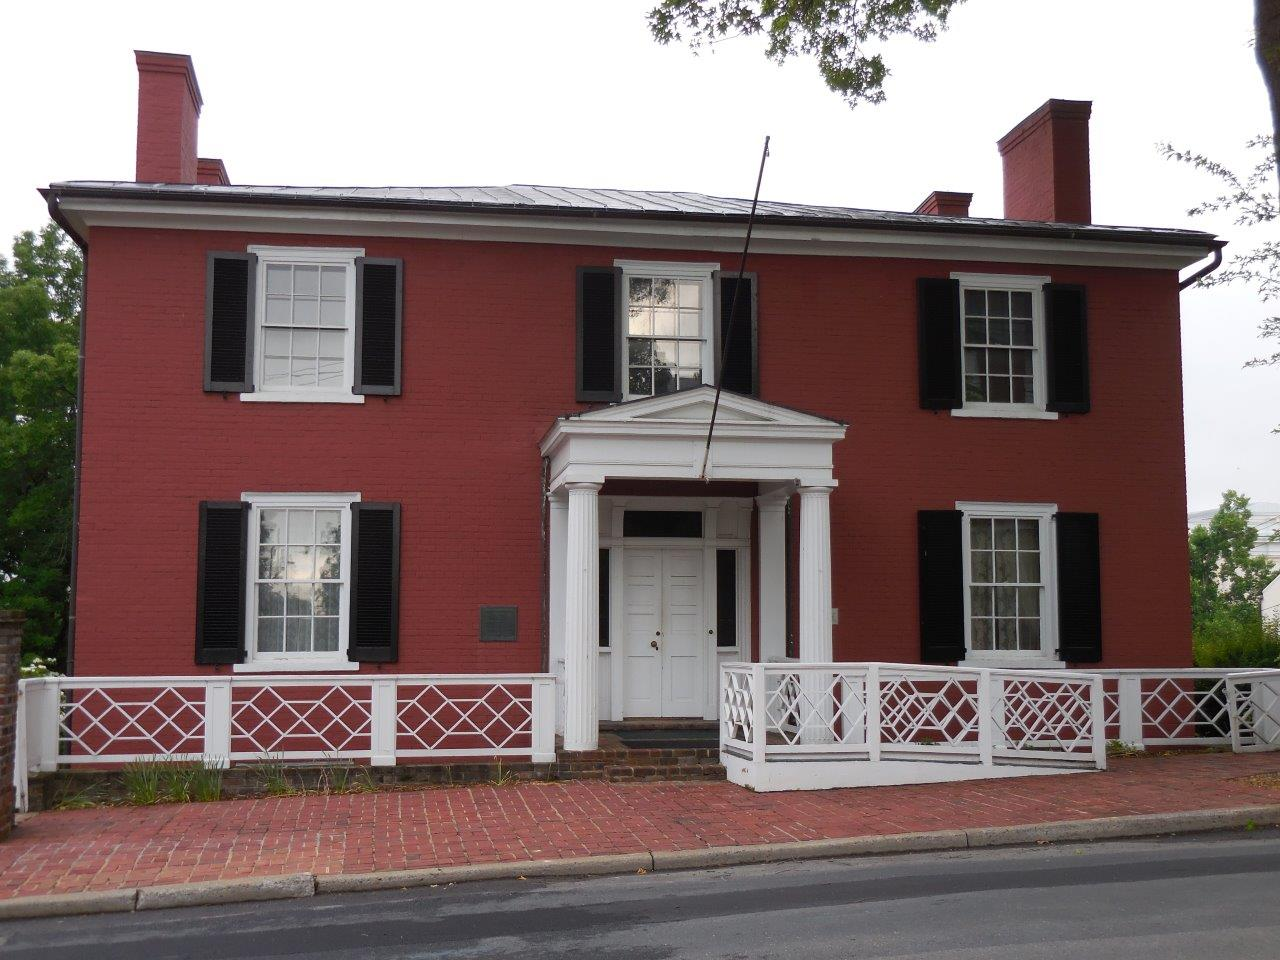 House in which Woodrow Wilson was born